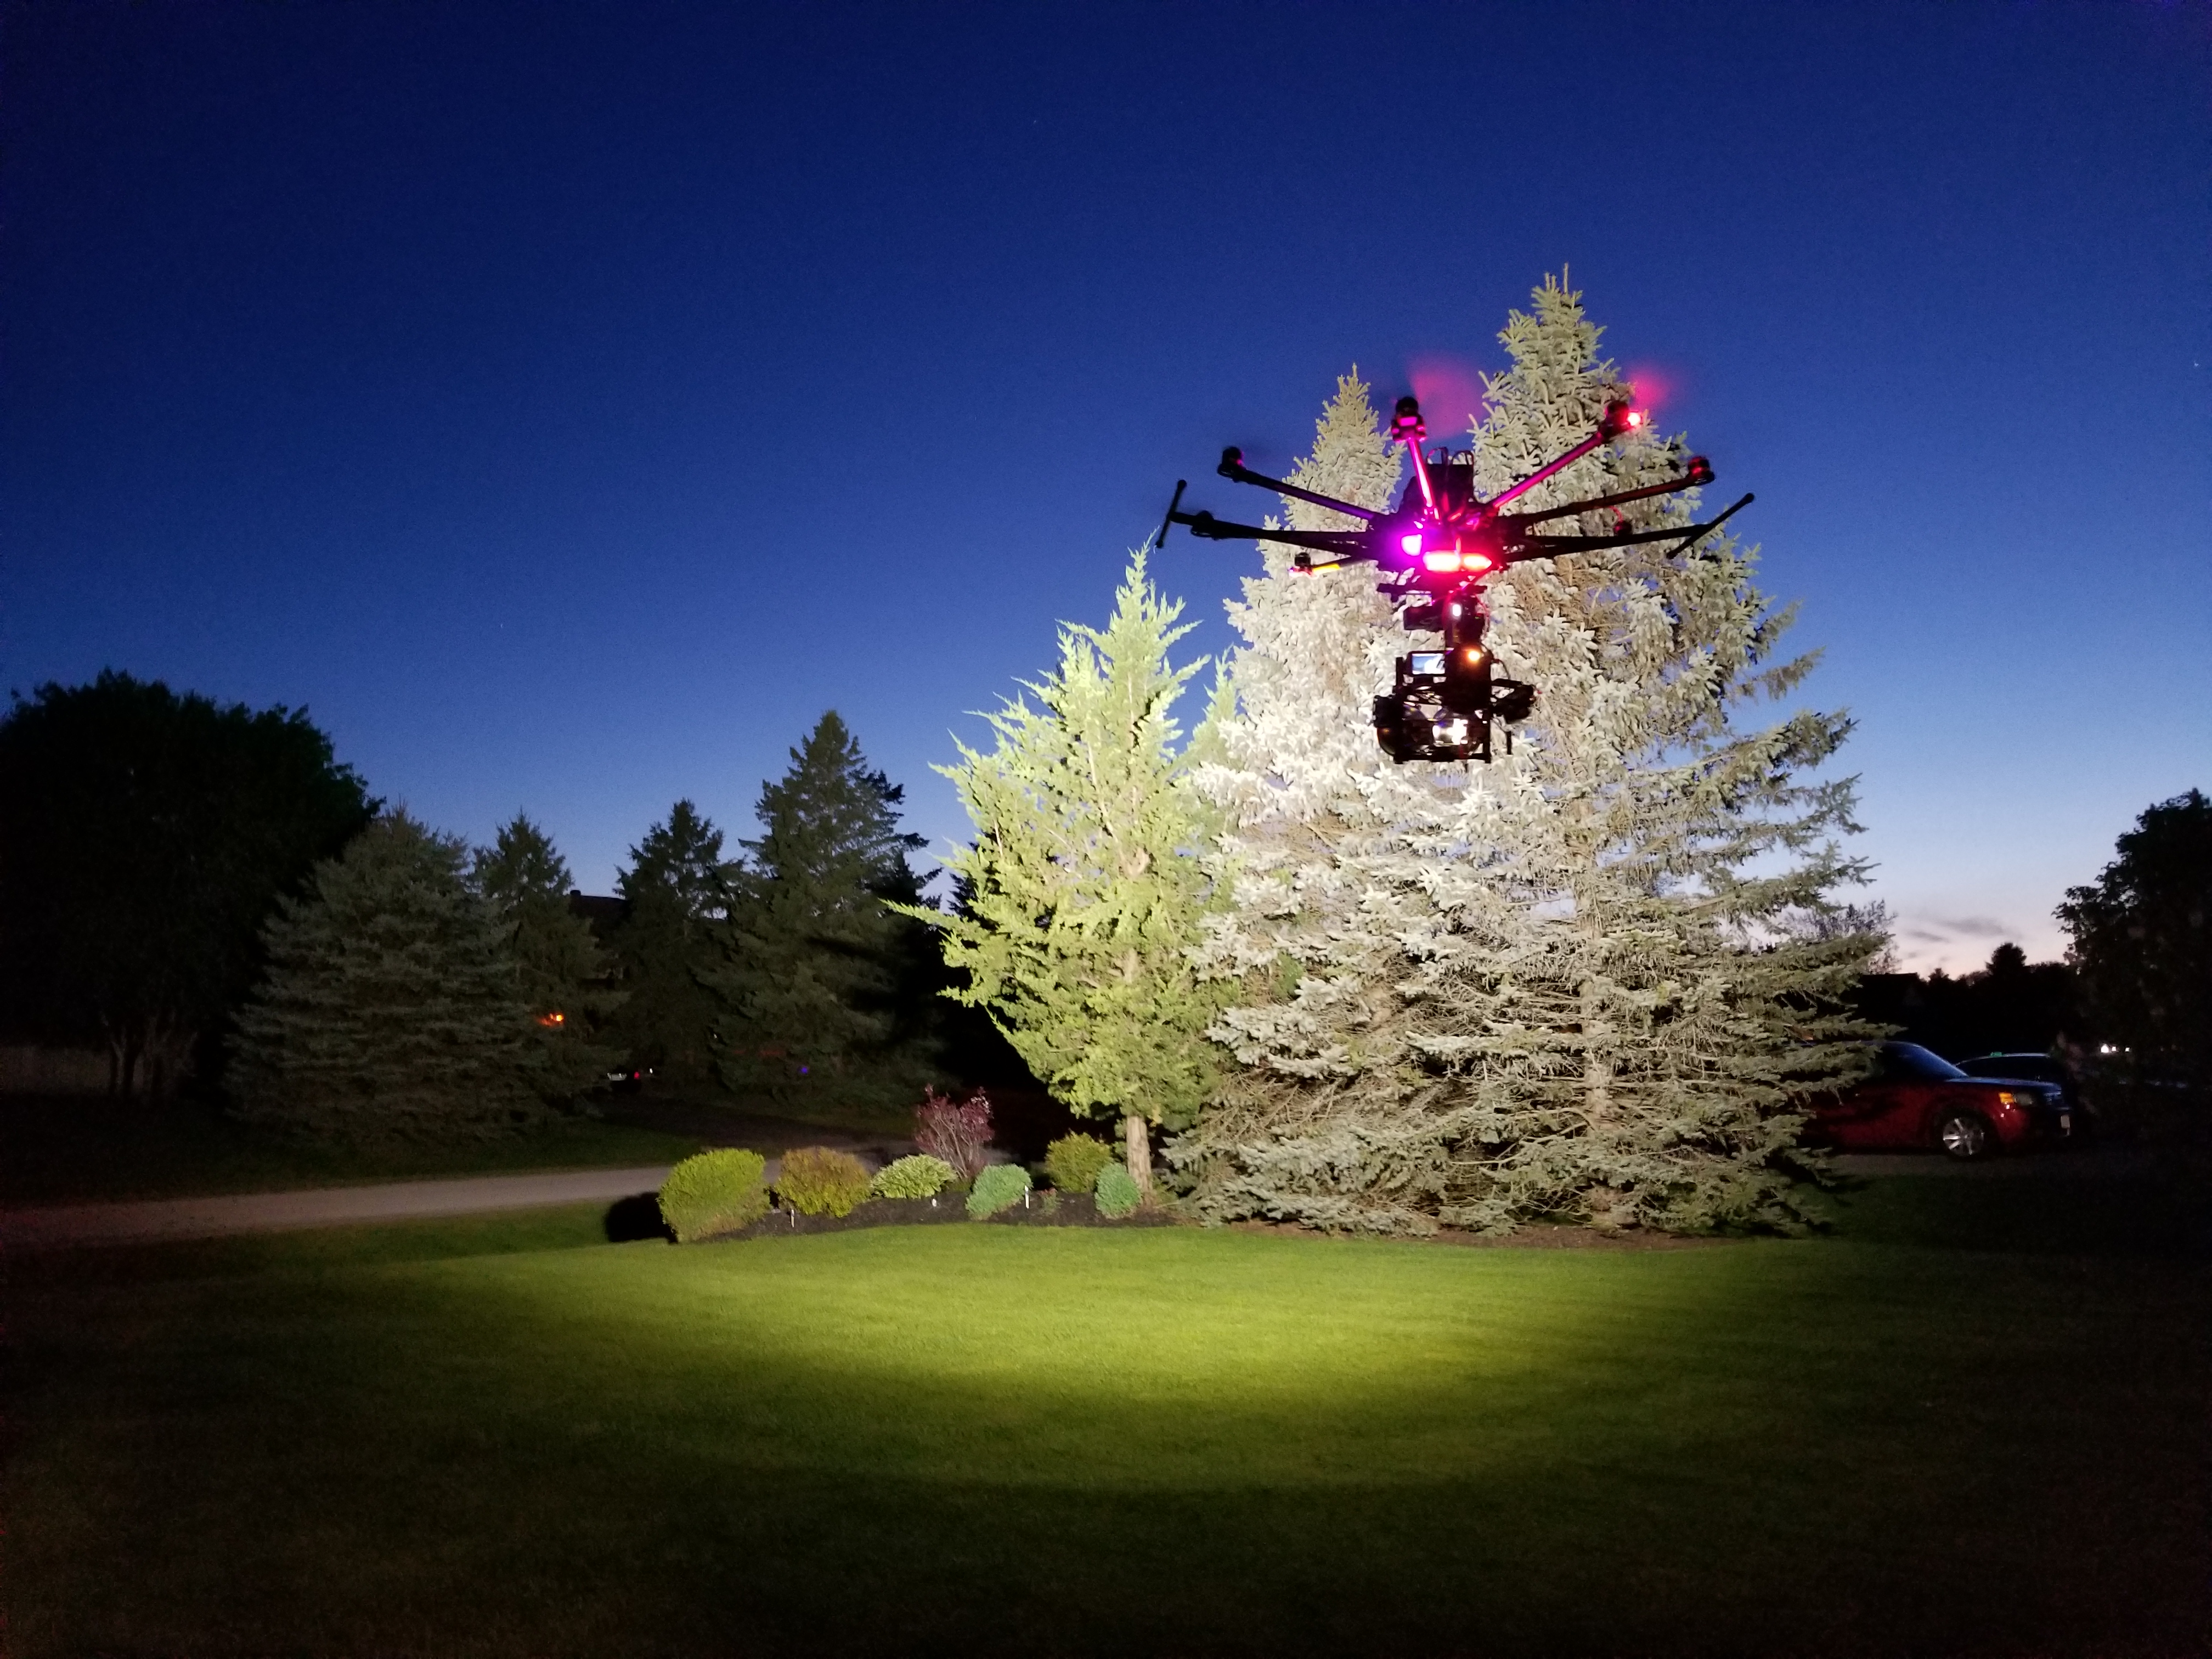 Spyder Lighting Drone